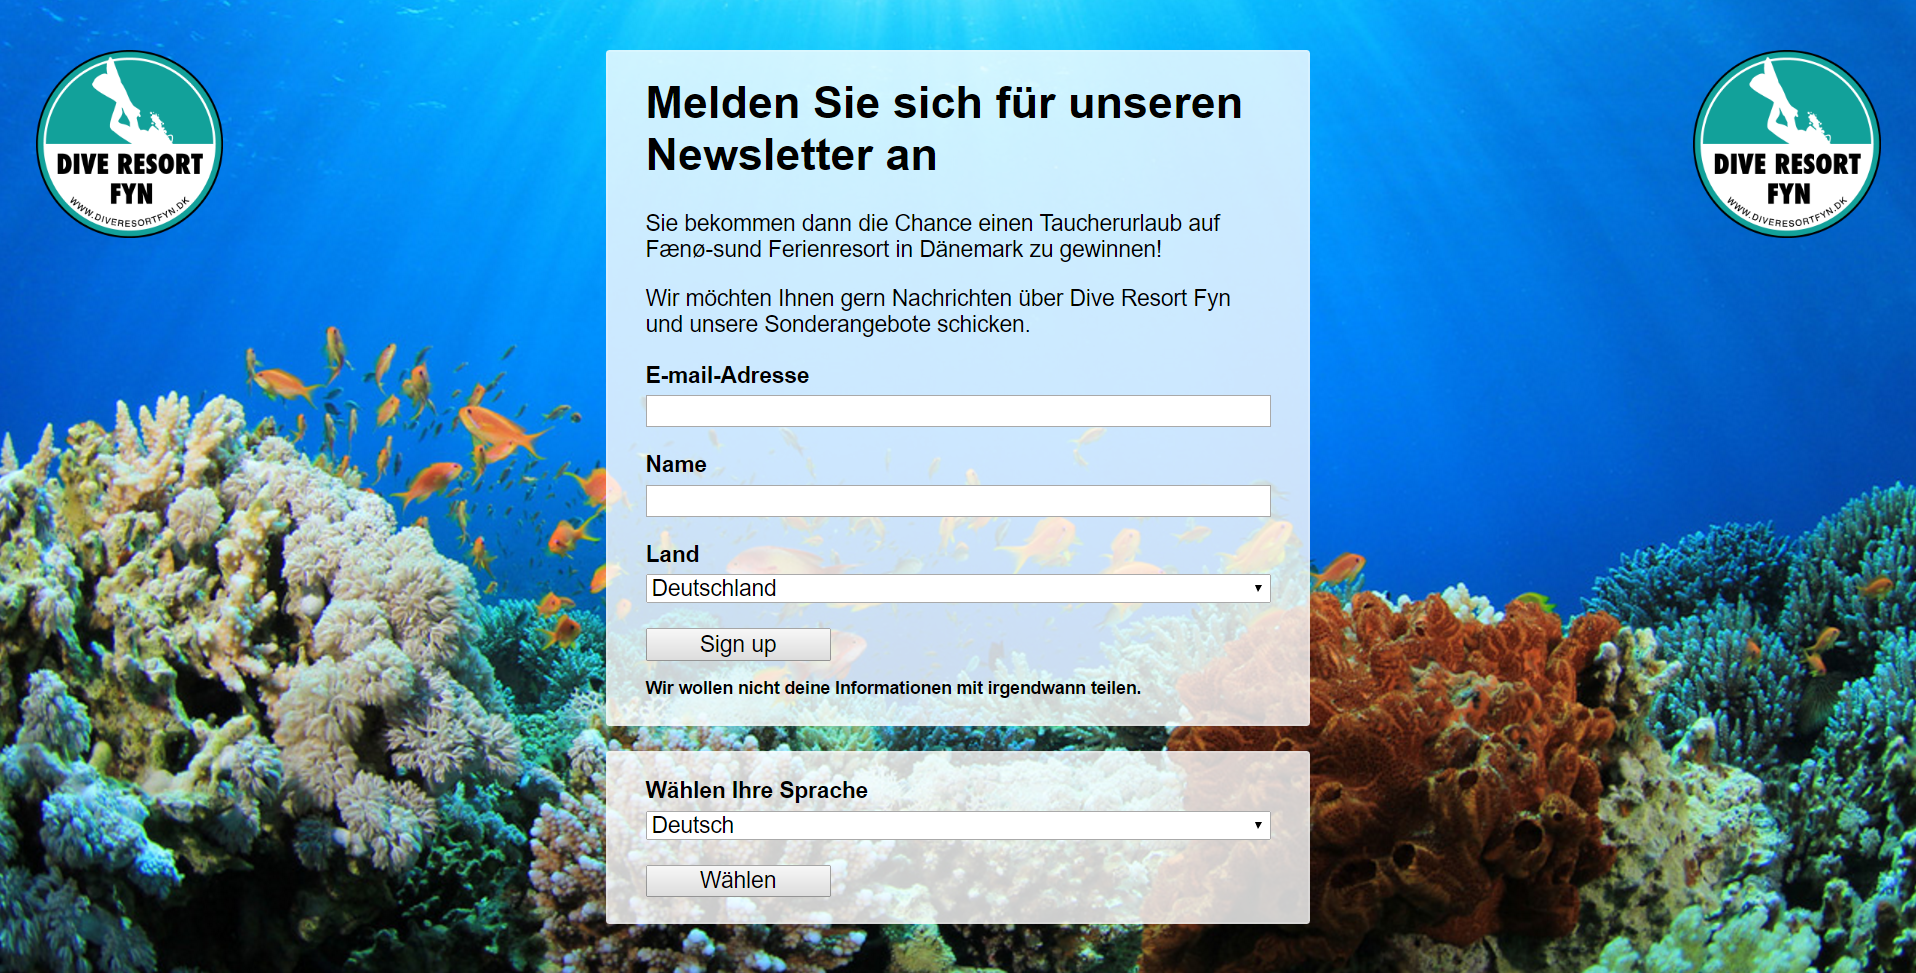 Create a trilingual signup form for a newsletter - made for BOOT.DE 2017